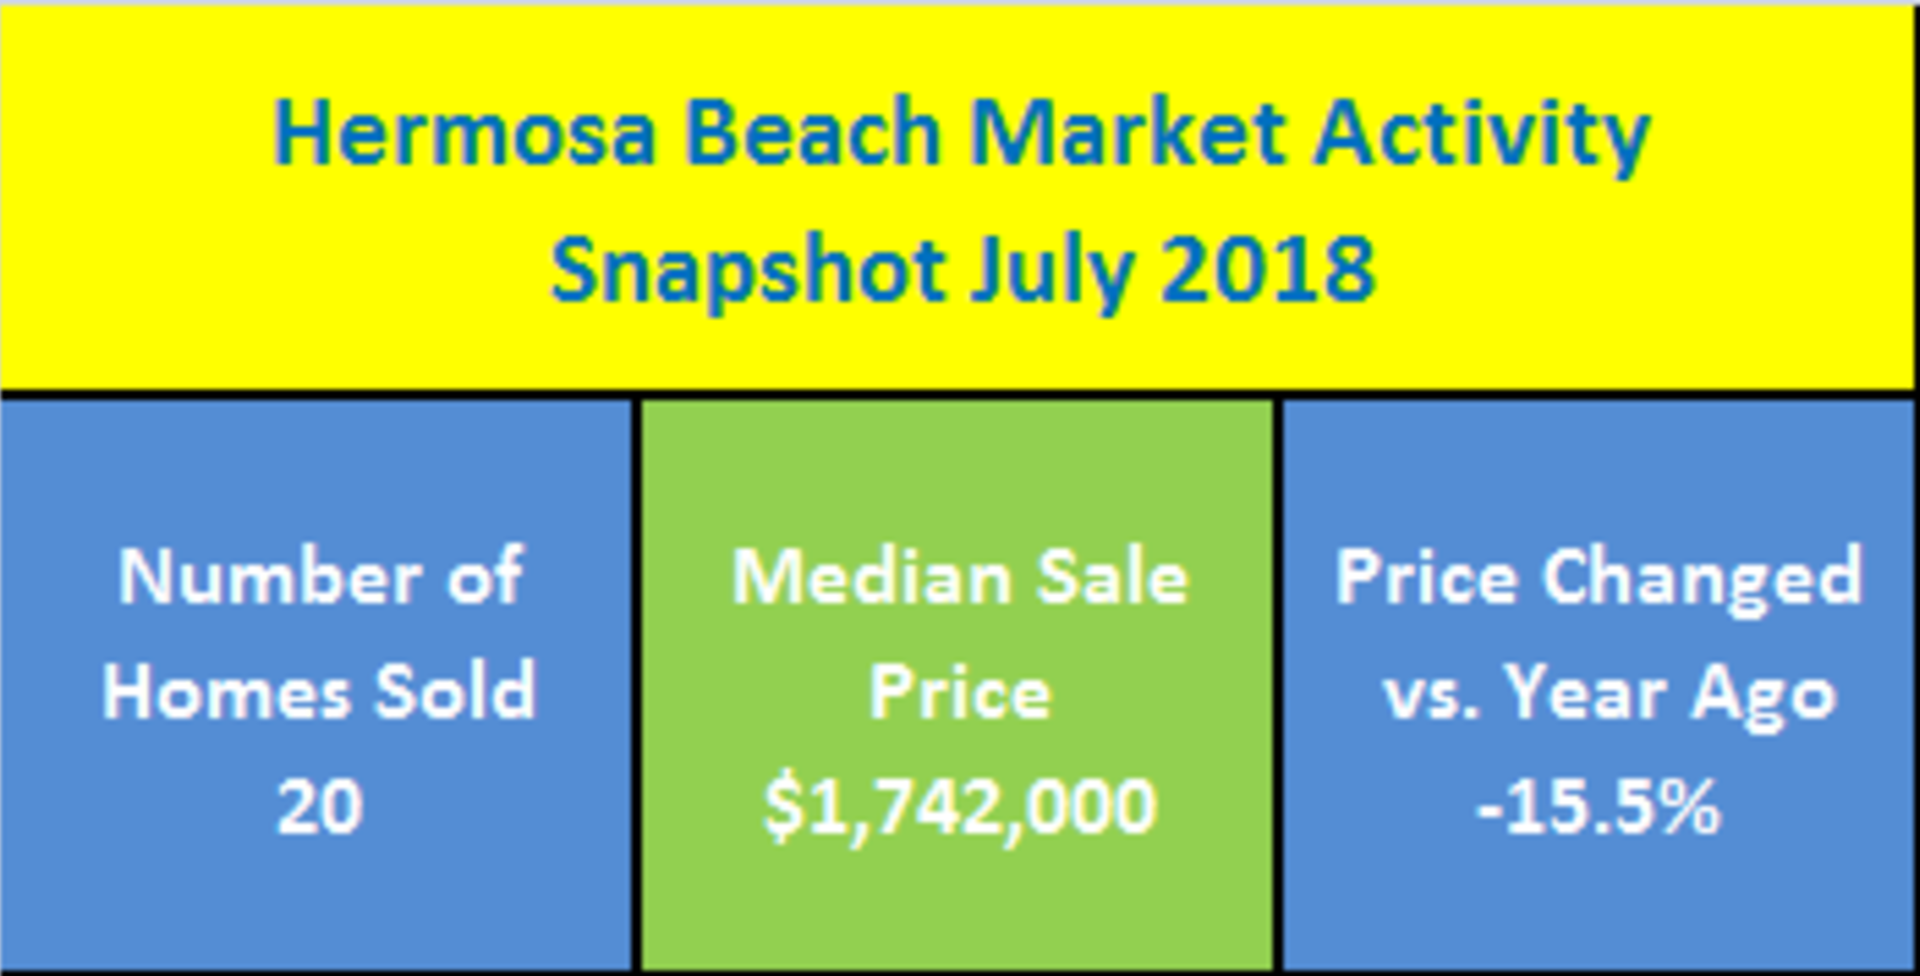 Hermosa Beach, CA Real Estate Market Activity Snapshot For July 2018